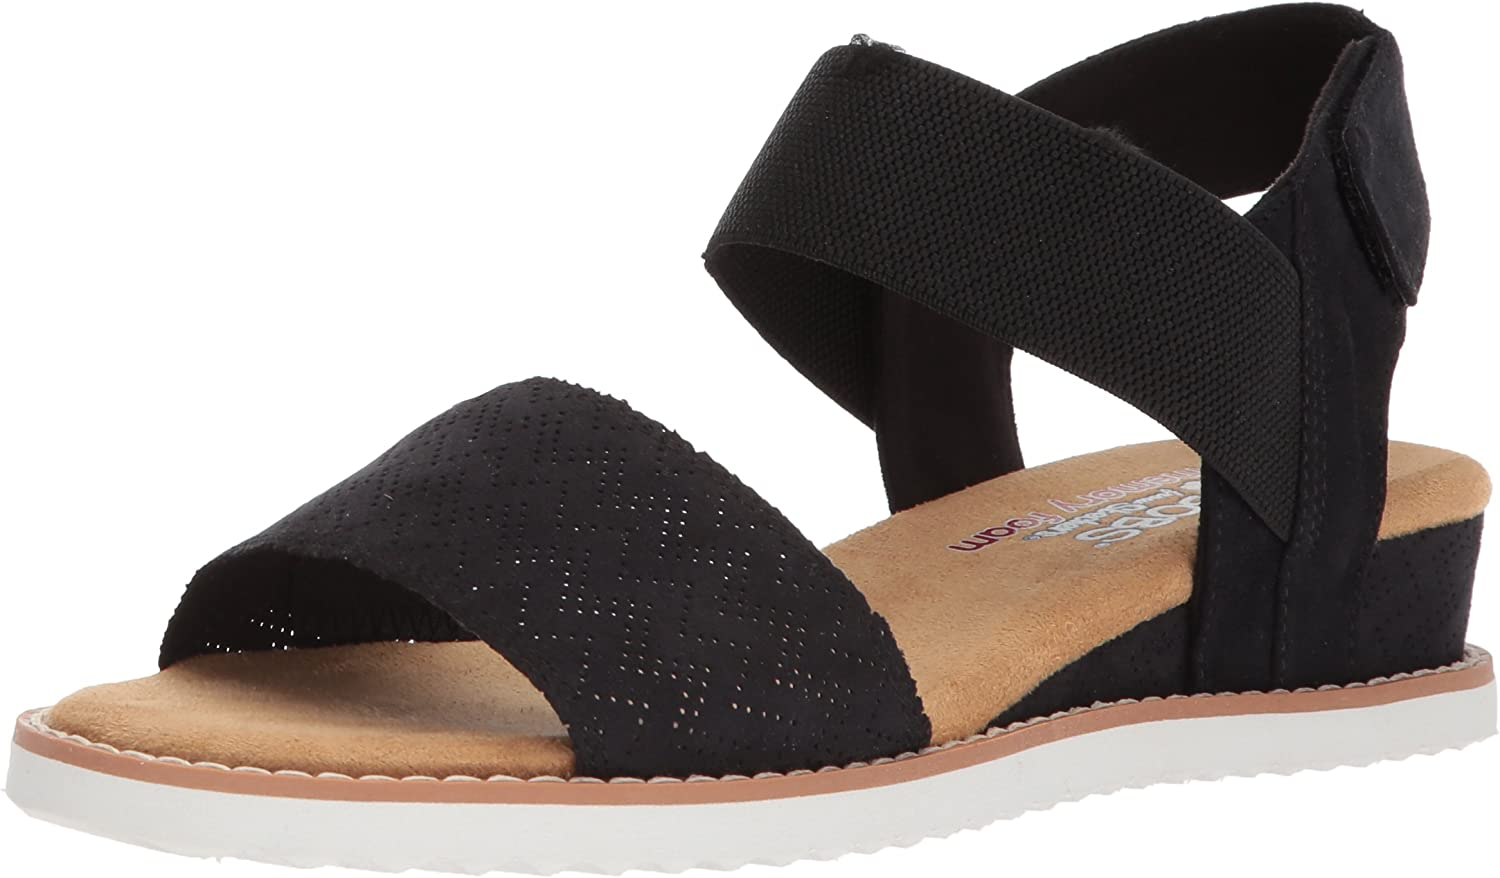 Skechers Womens Desert Kiss Sandal